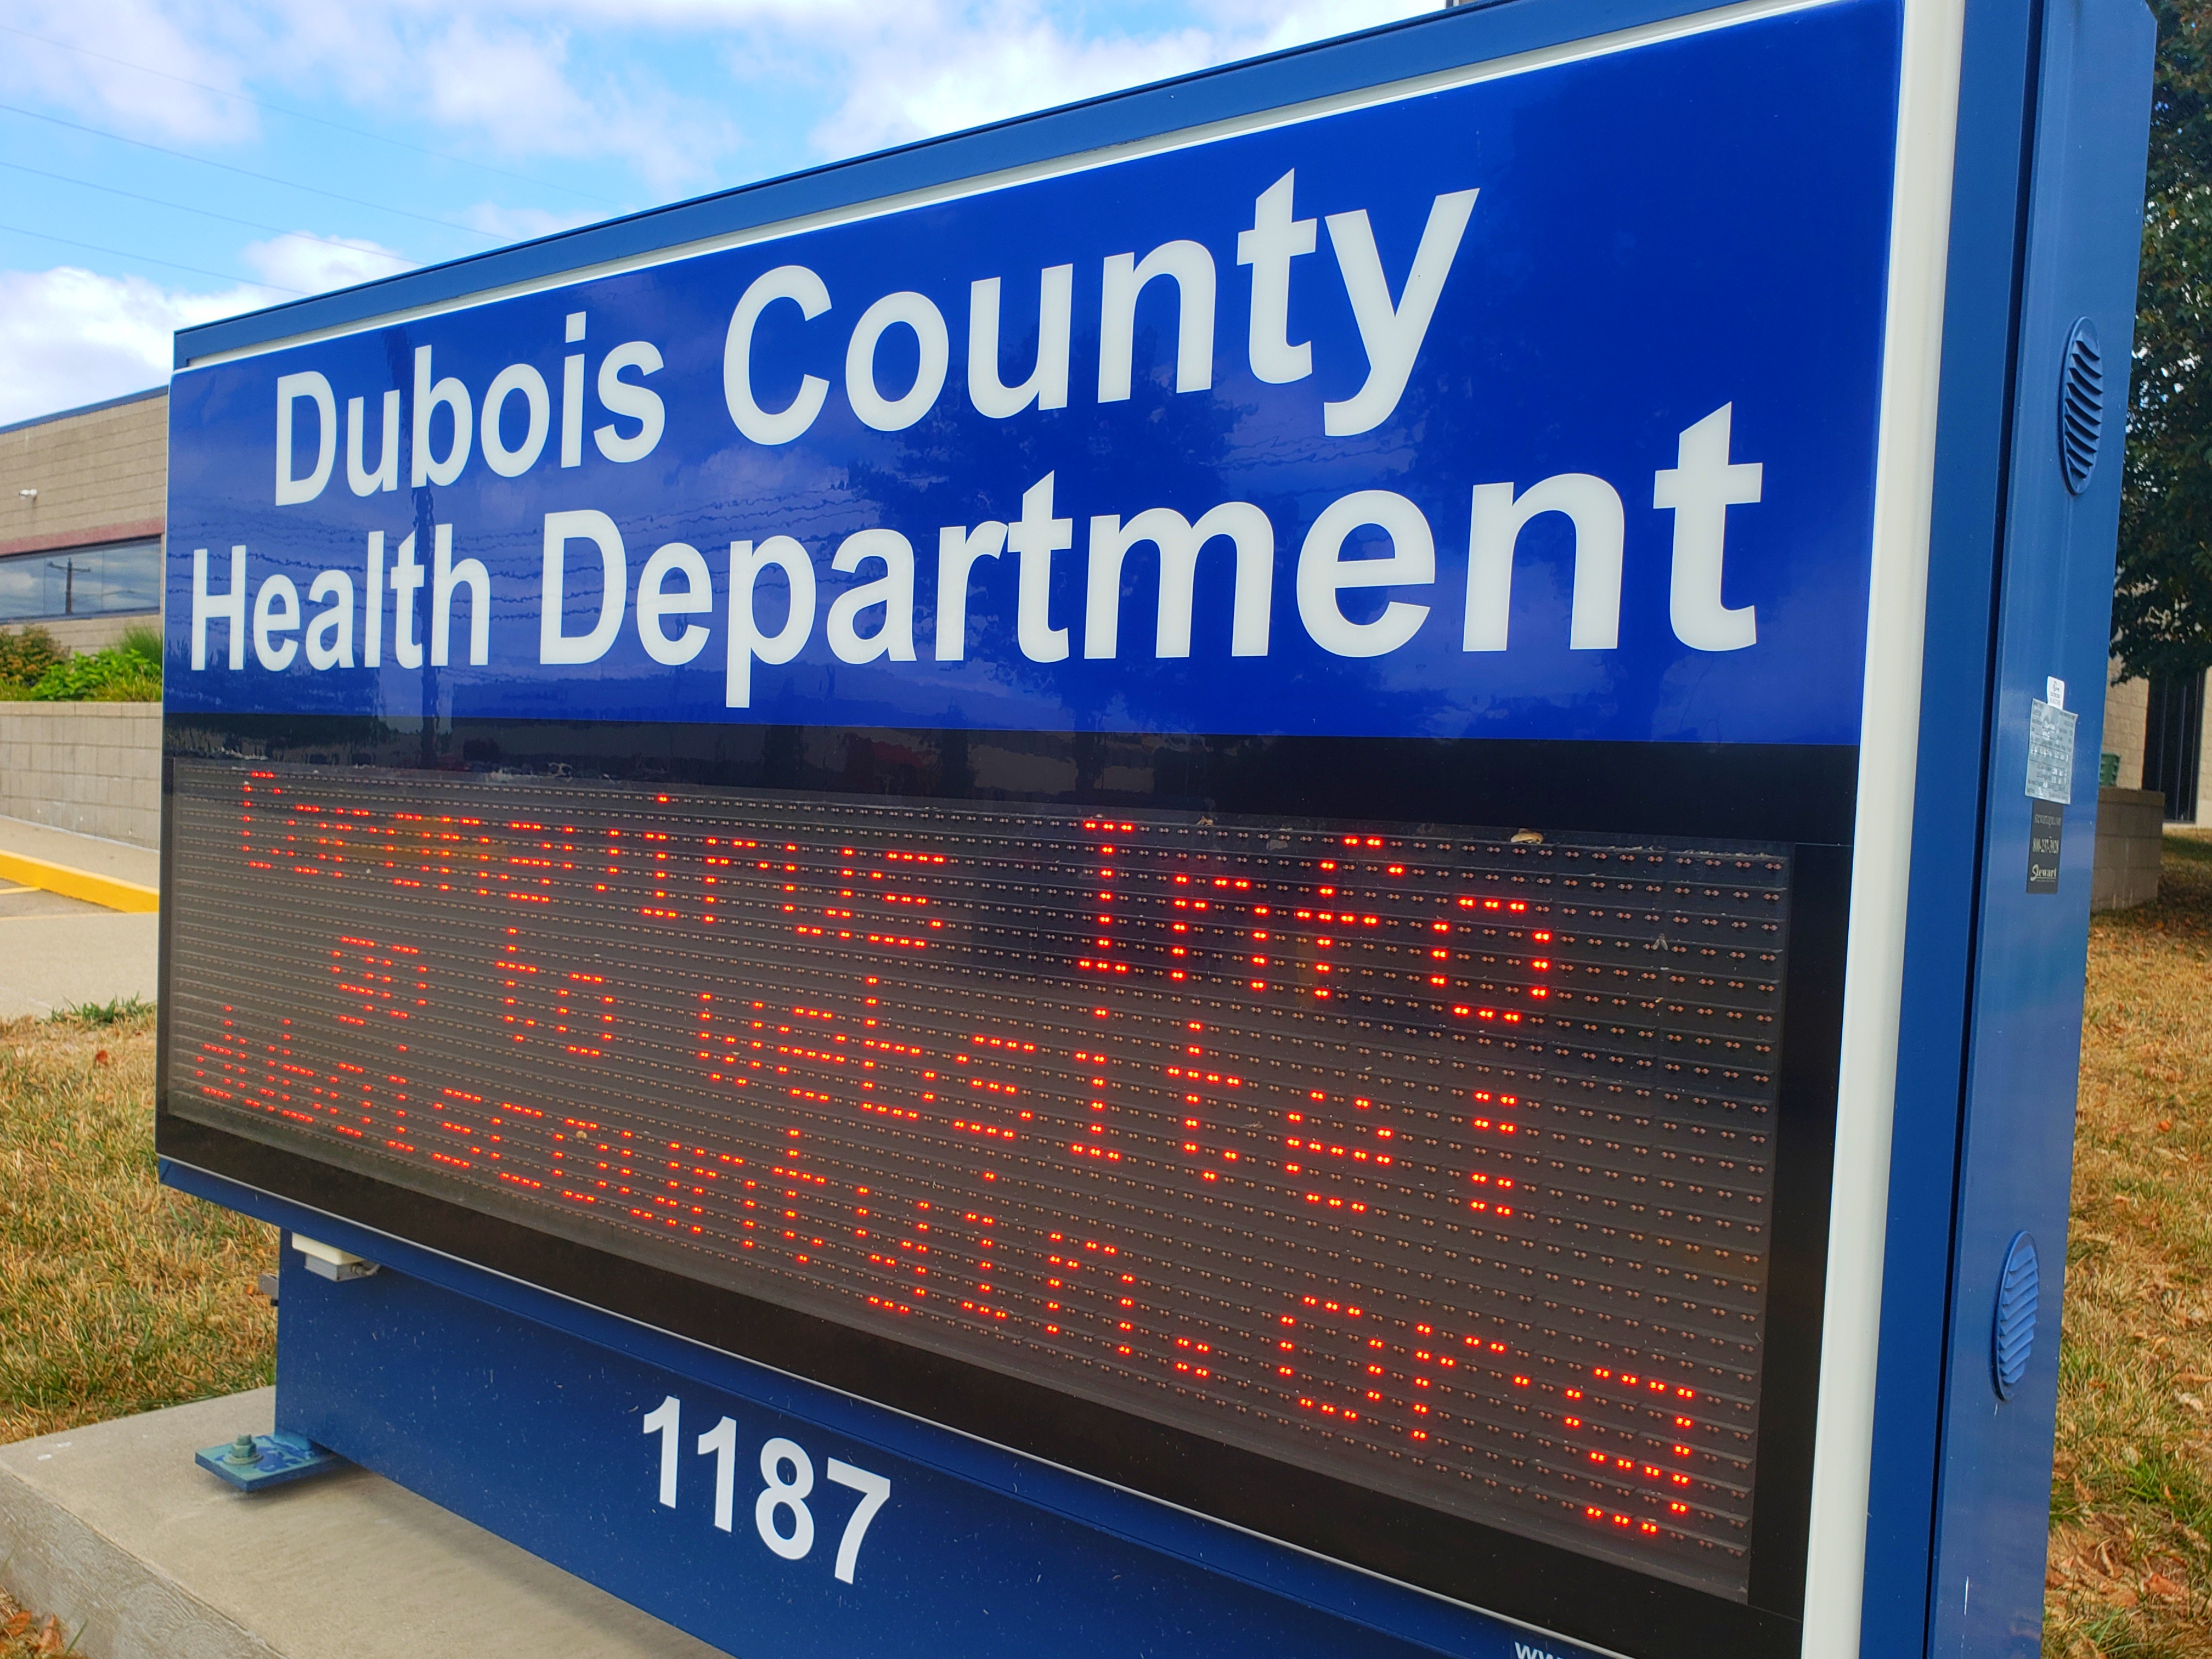 Five New Cases of COVID-19 Reported in Dubois County Friday Morning, One Death Announced Thursday